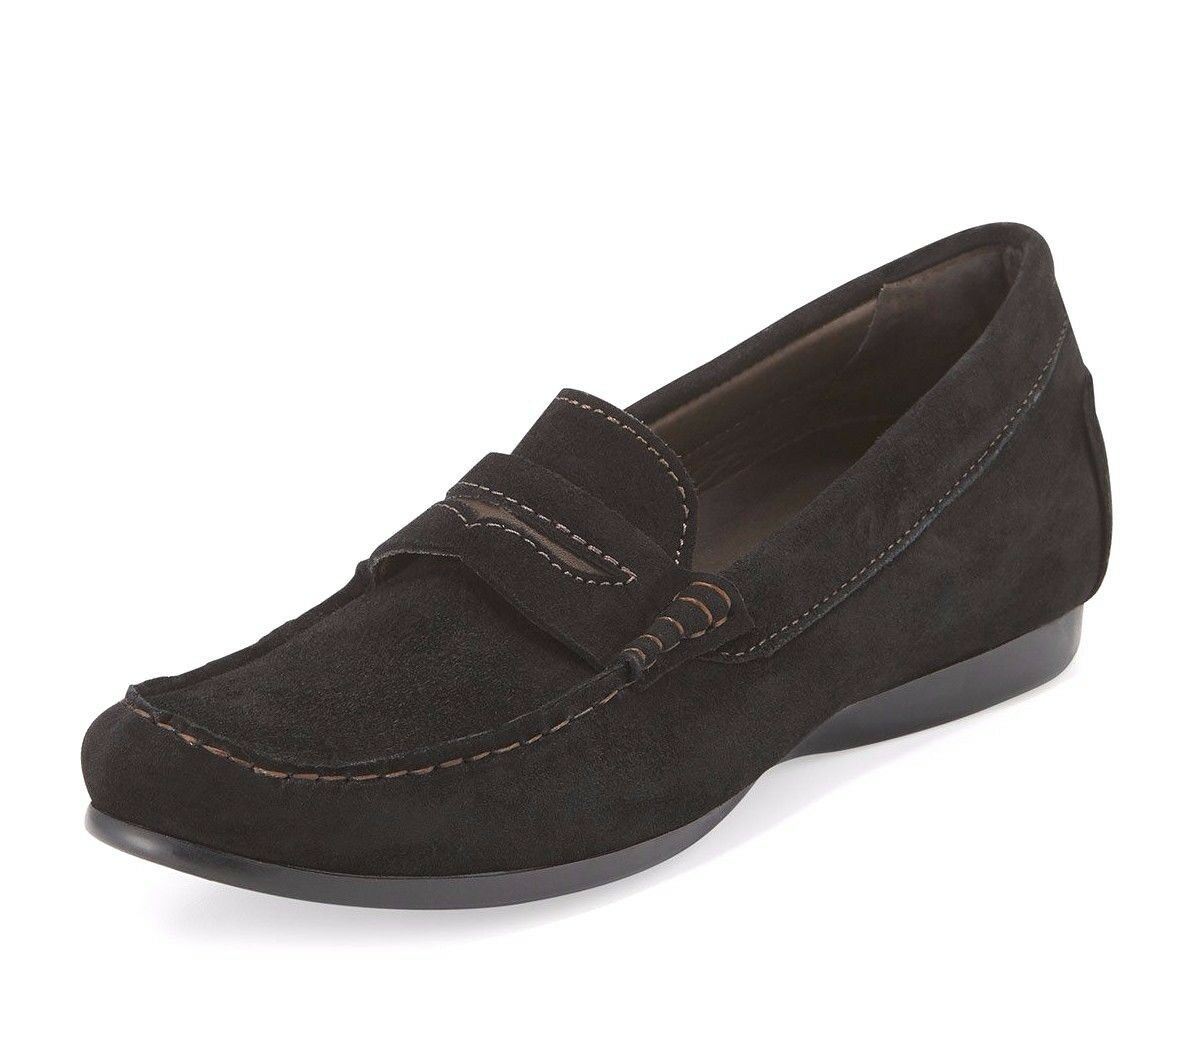 Munro Women's Black Leather Ramie Loafer 7335 Size 11M